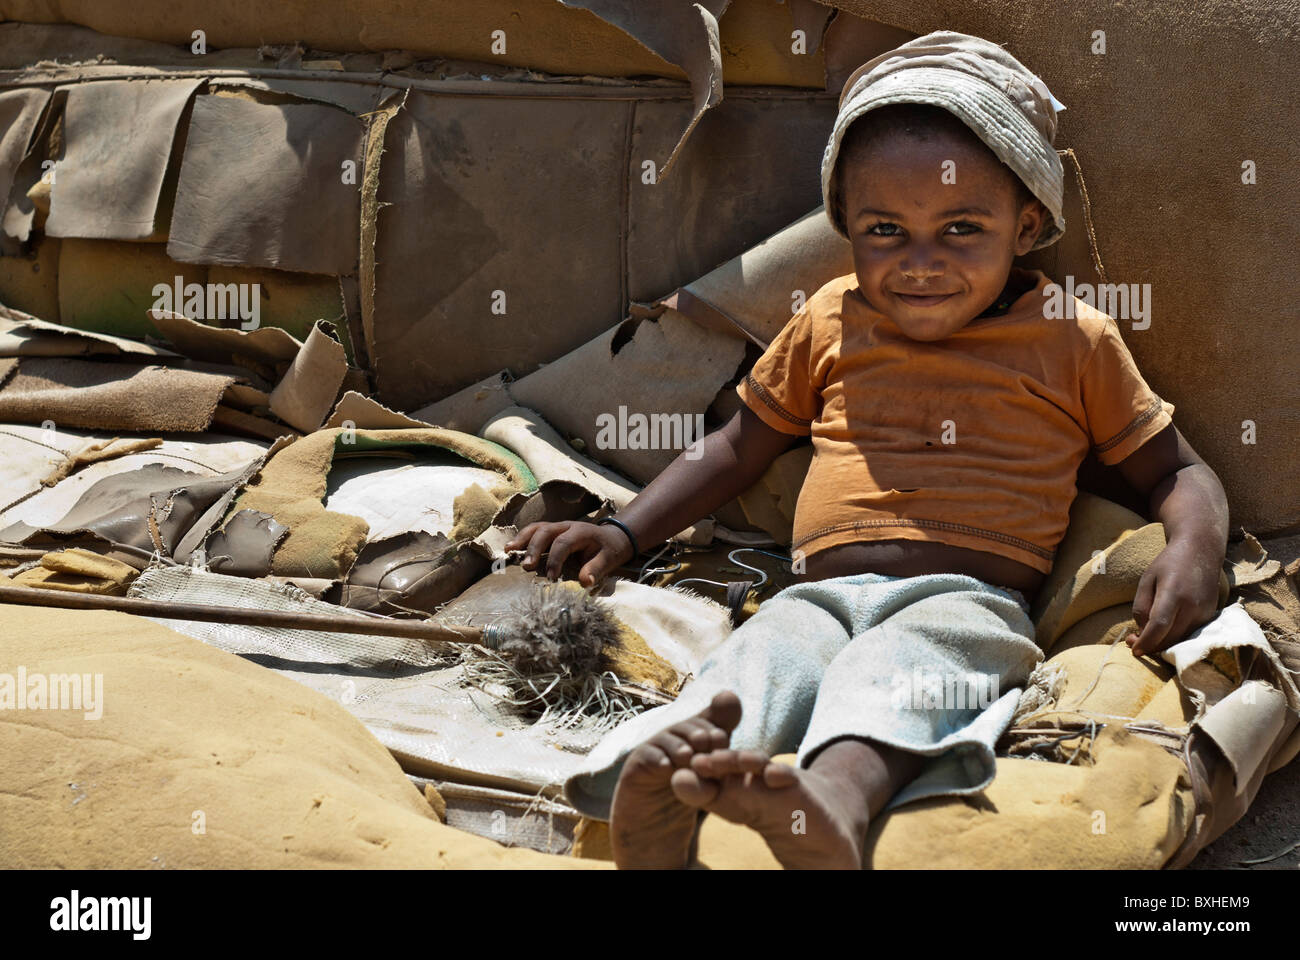 Girl on a destroyed couch, Opuwo, Namibia, Africa - Stock Image